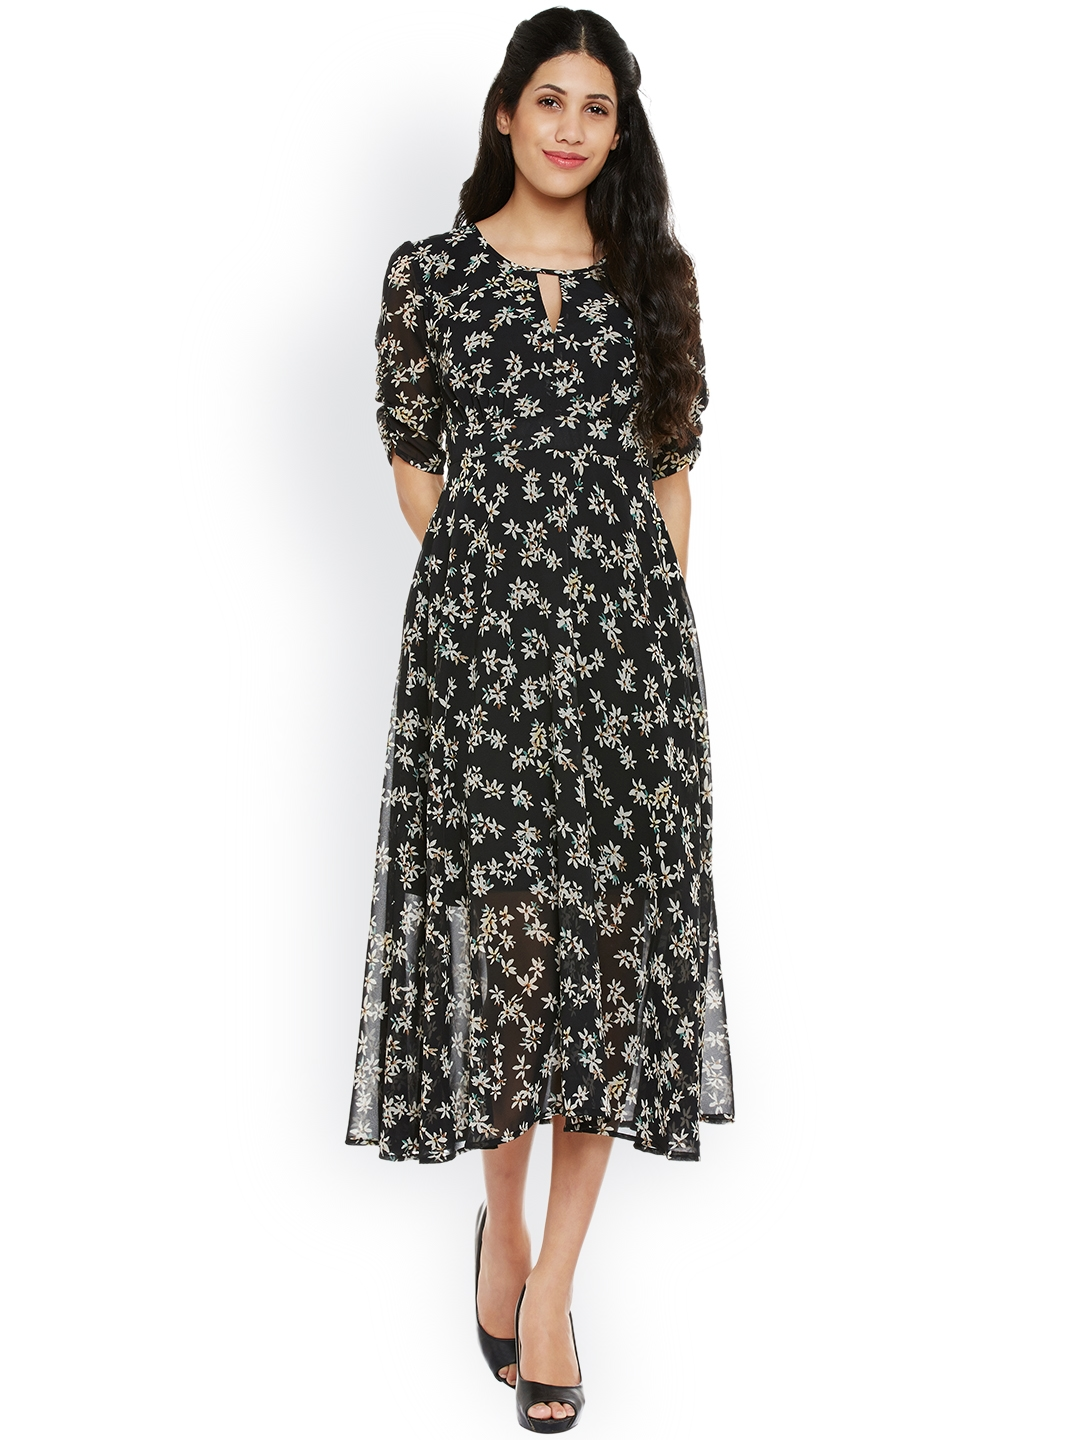 Buy Nun Women Black Floral Print Fit   Flare Midi Dress - Dresses ... 2a54f688e